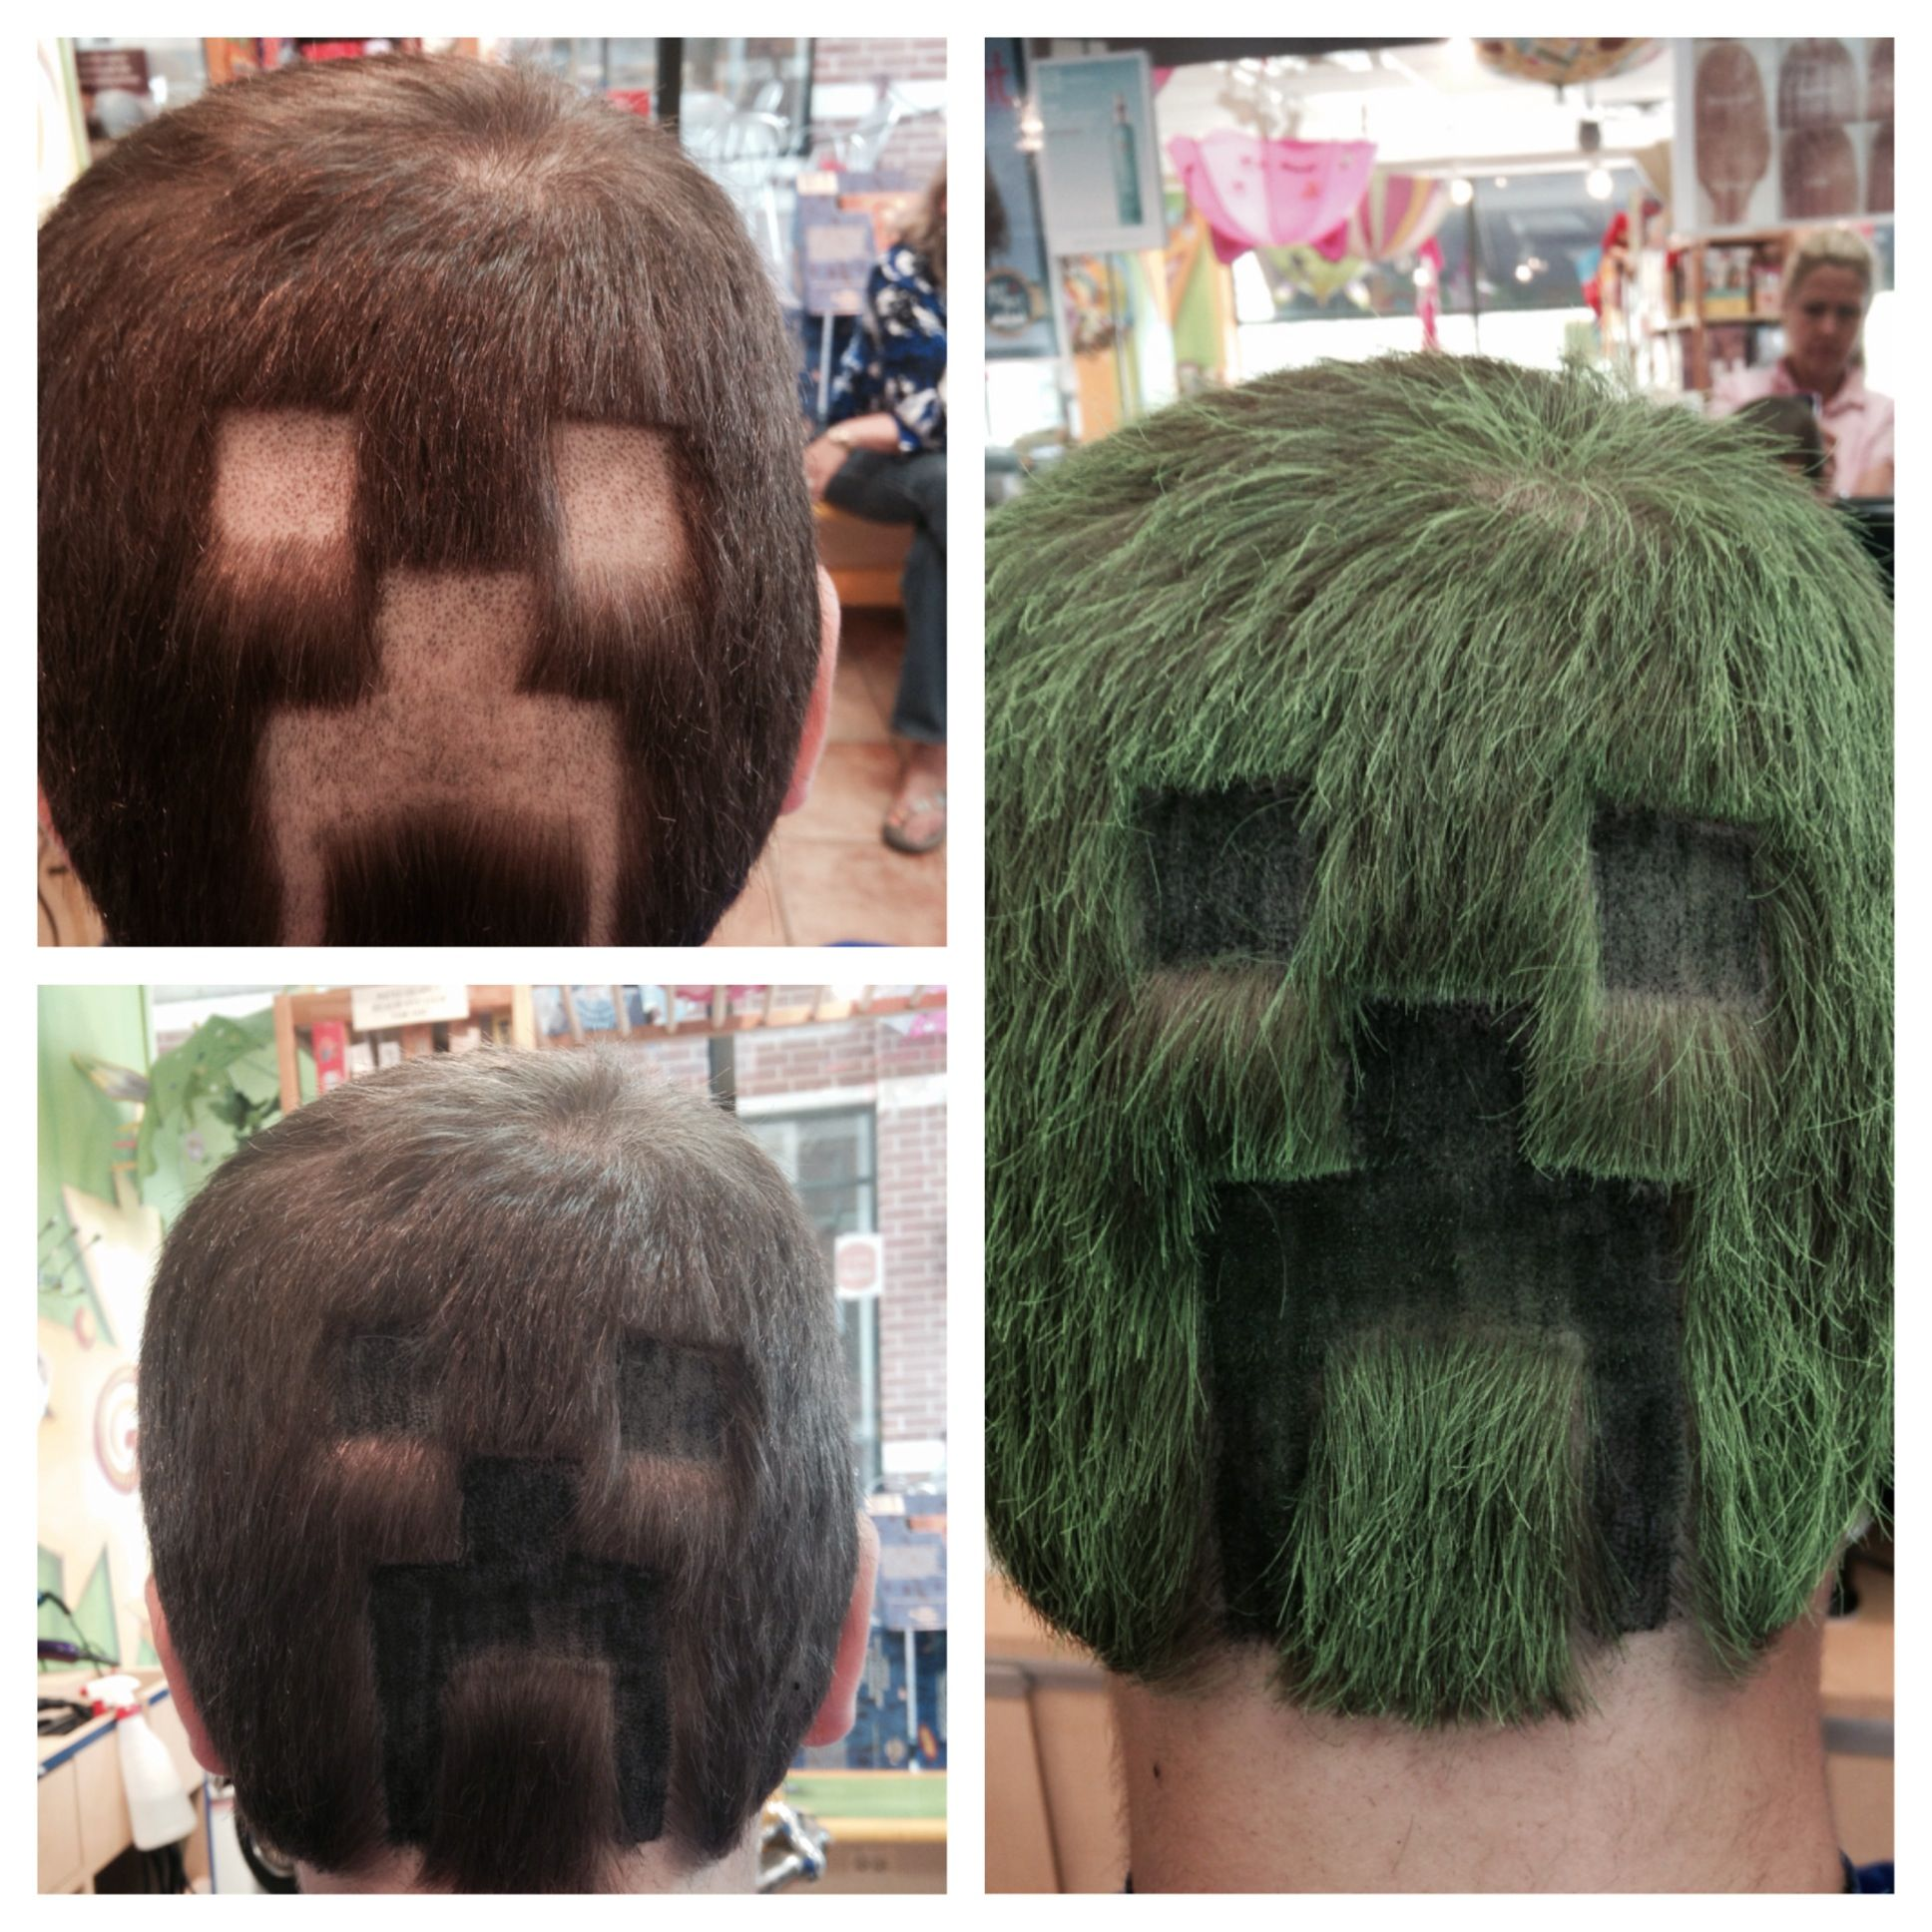 fun with clippers! Minecraft\'s CREEPER ~ KidSnips.com | HAIR HAIR ...